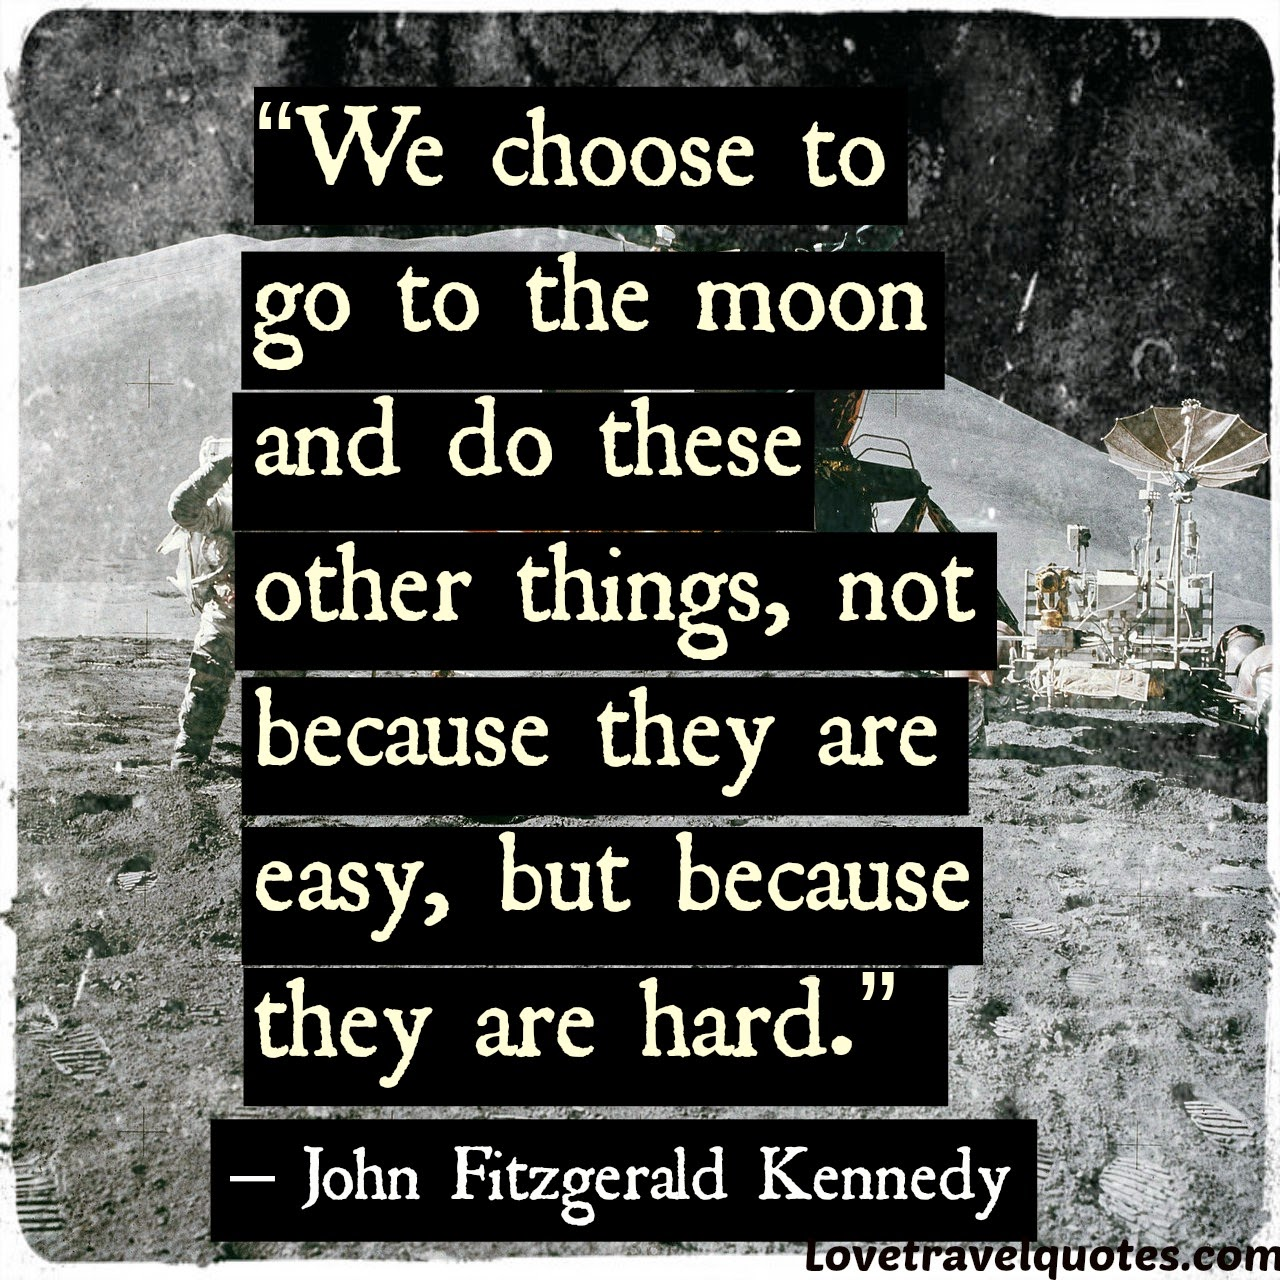 we choose to go to the moon and do these other things